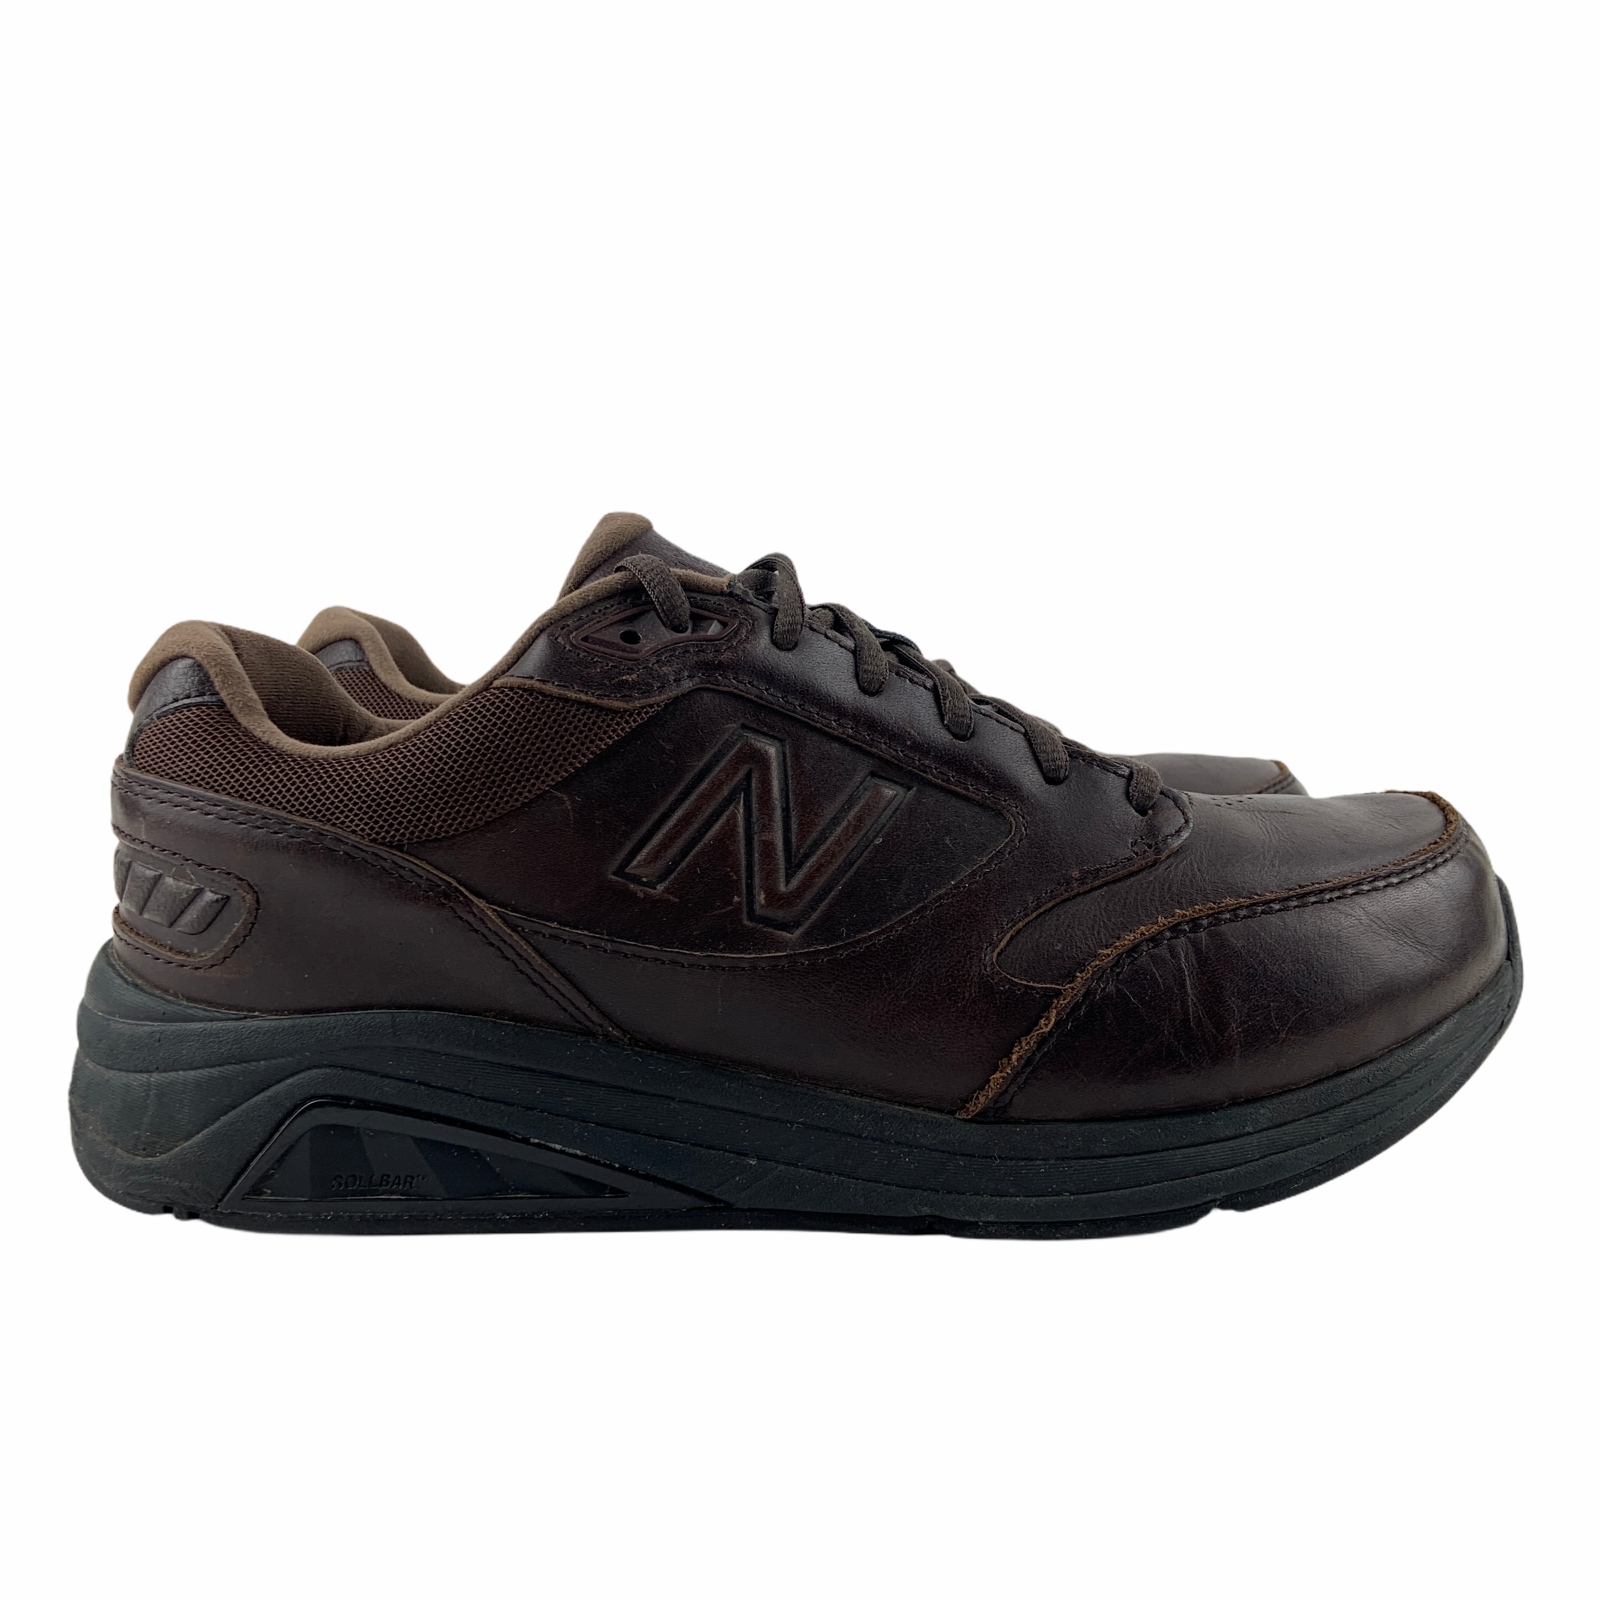 New Balance MW928BR3 Brown Leather Walking Shoes Rollbar Mens US 8 (6E Wide)